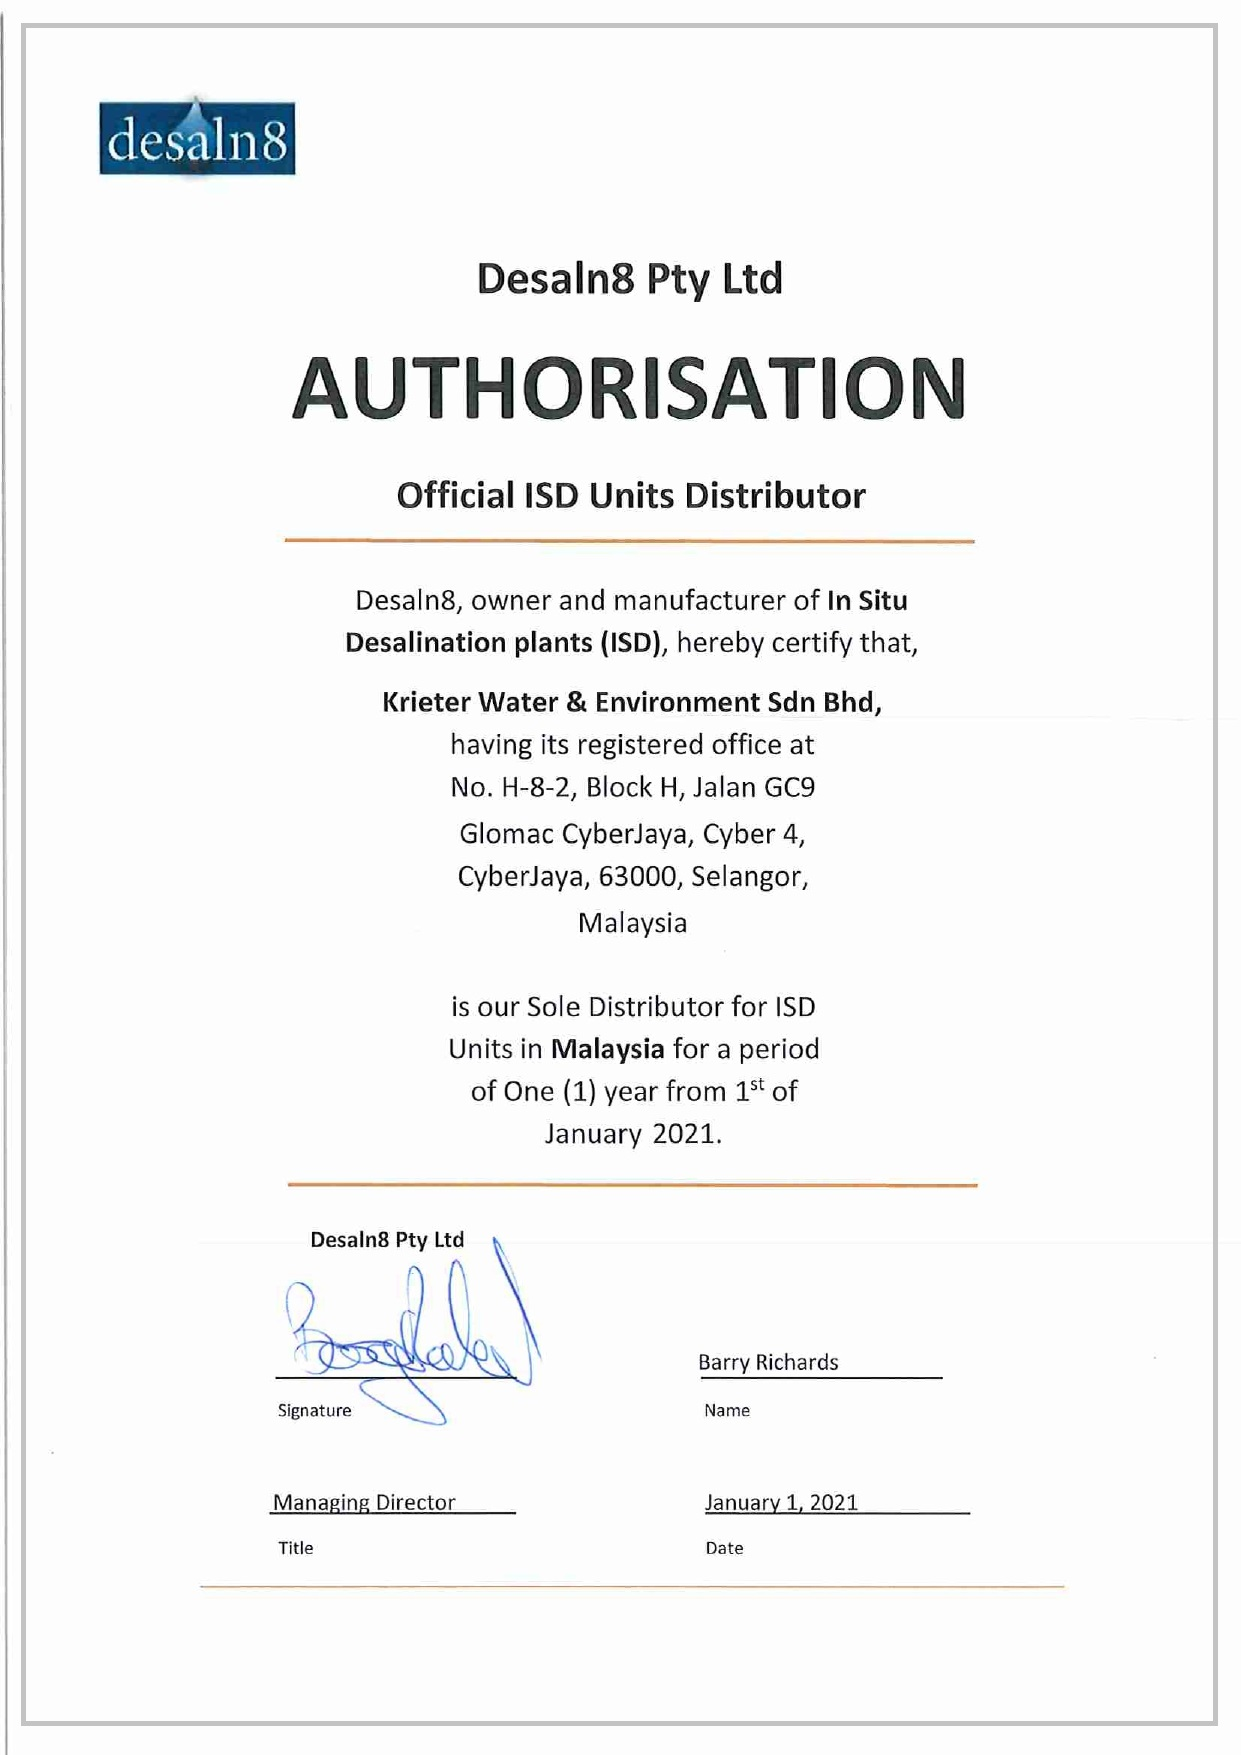 MALAYSIA - ISD units Distributor Certificate_Desaln8 Pty Ltd signed_page